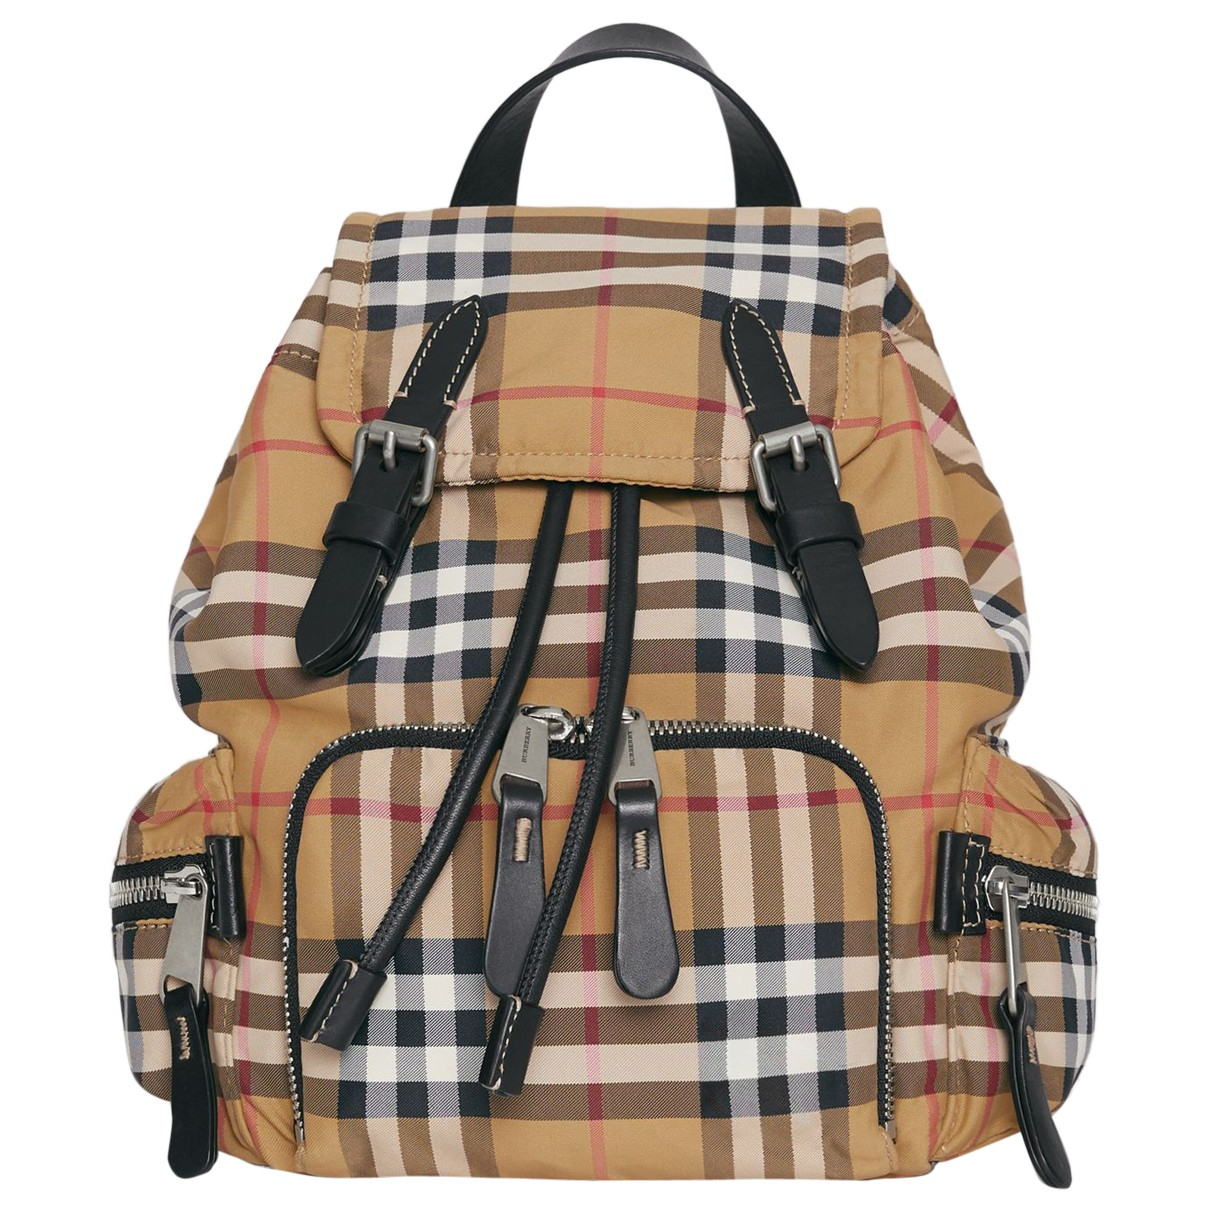 Burberry - Sac a dos The Rucksack pour femme en coton - multicolore